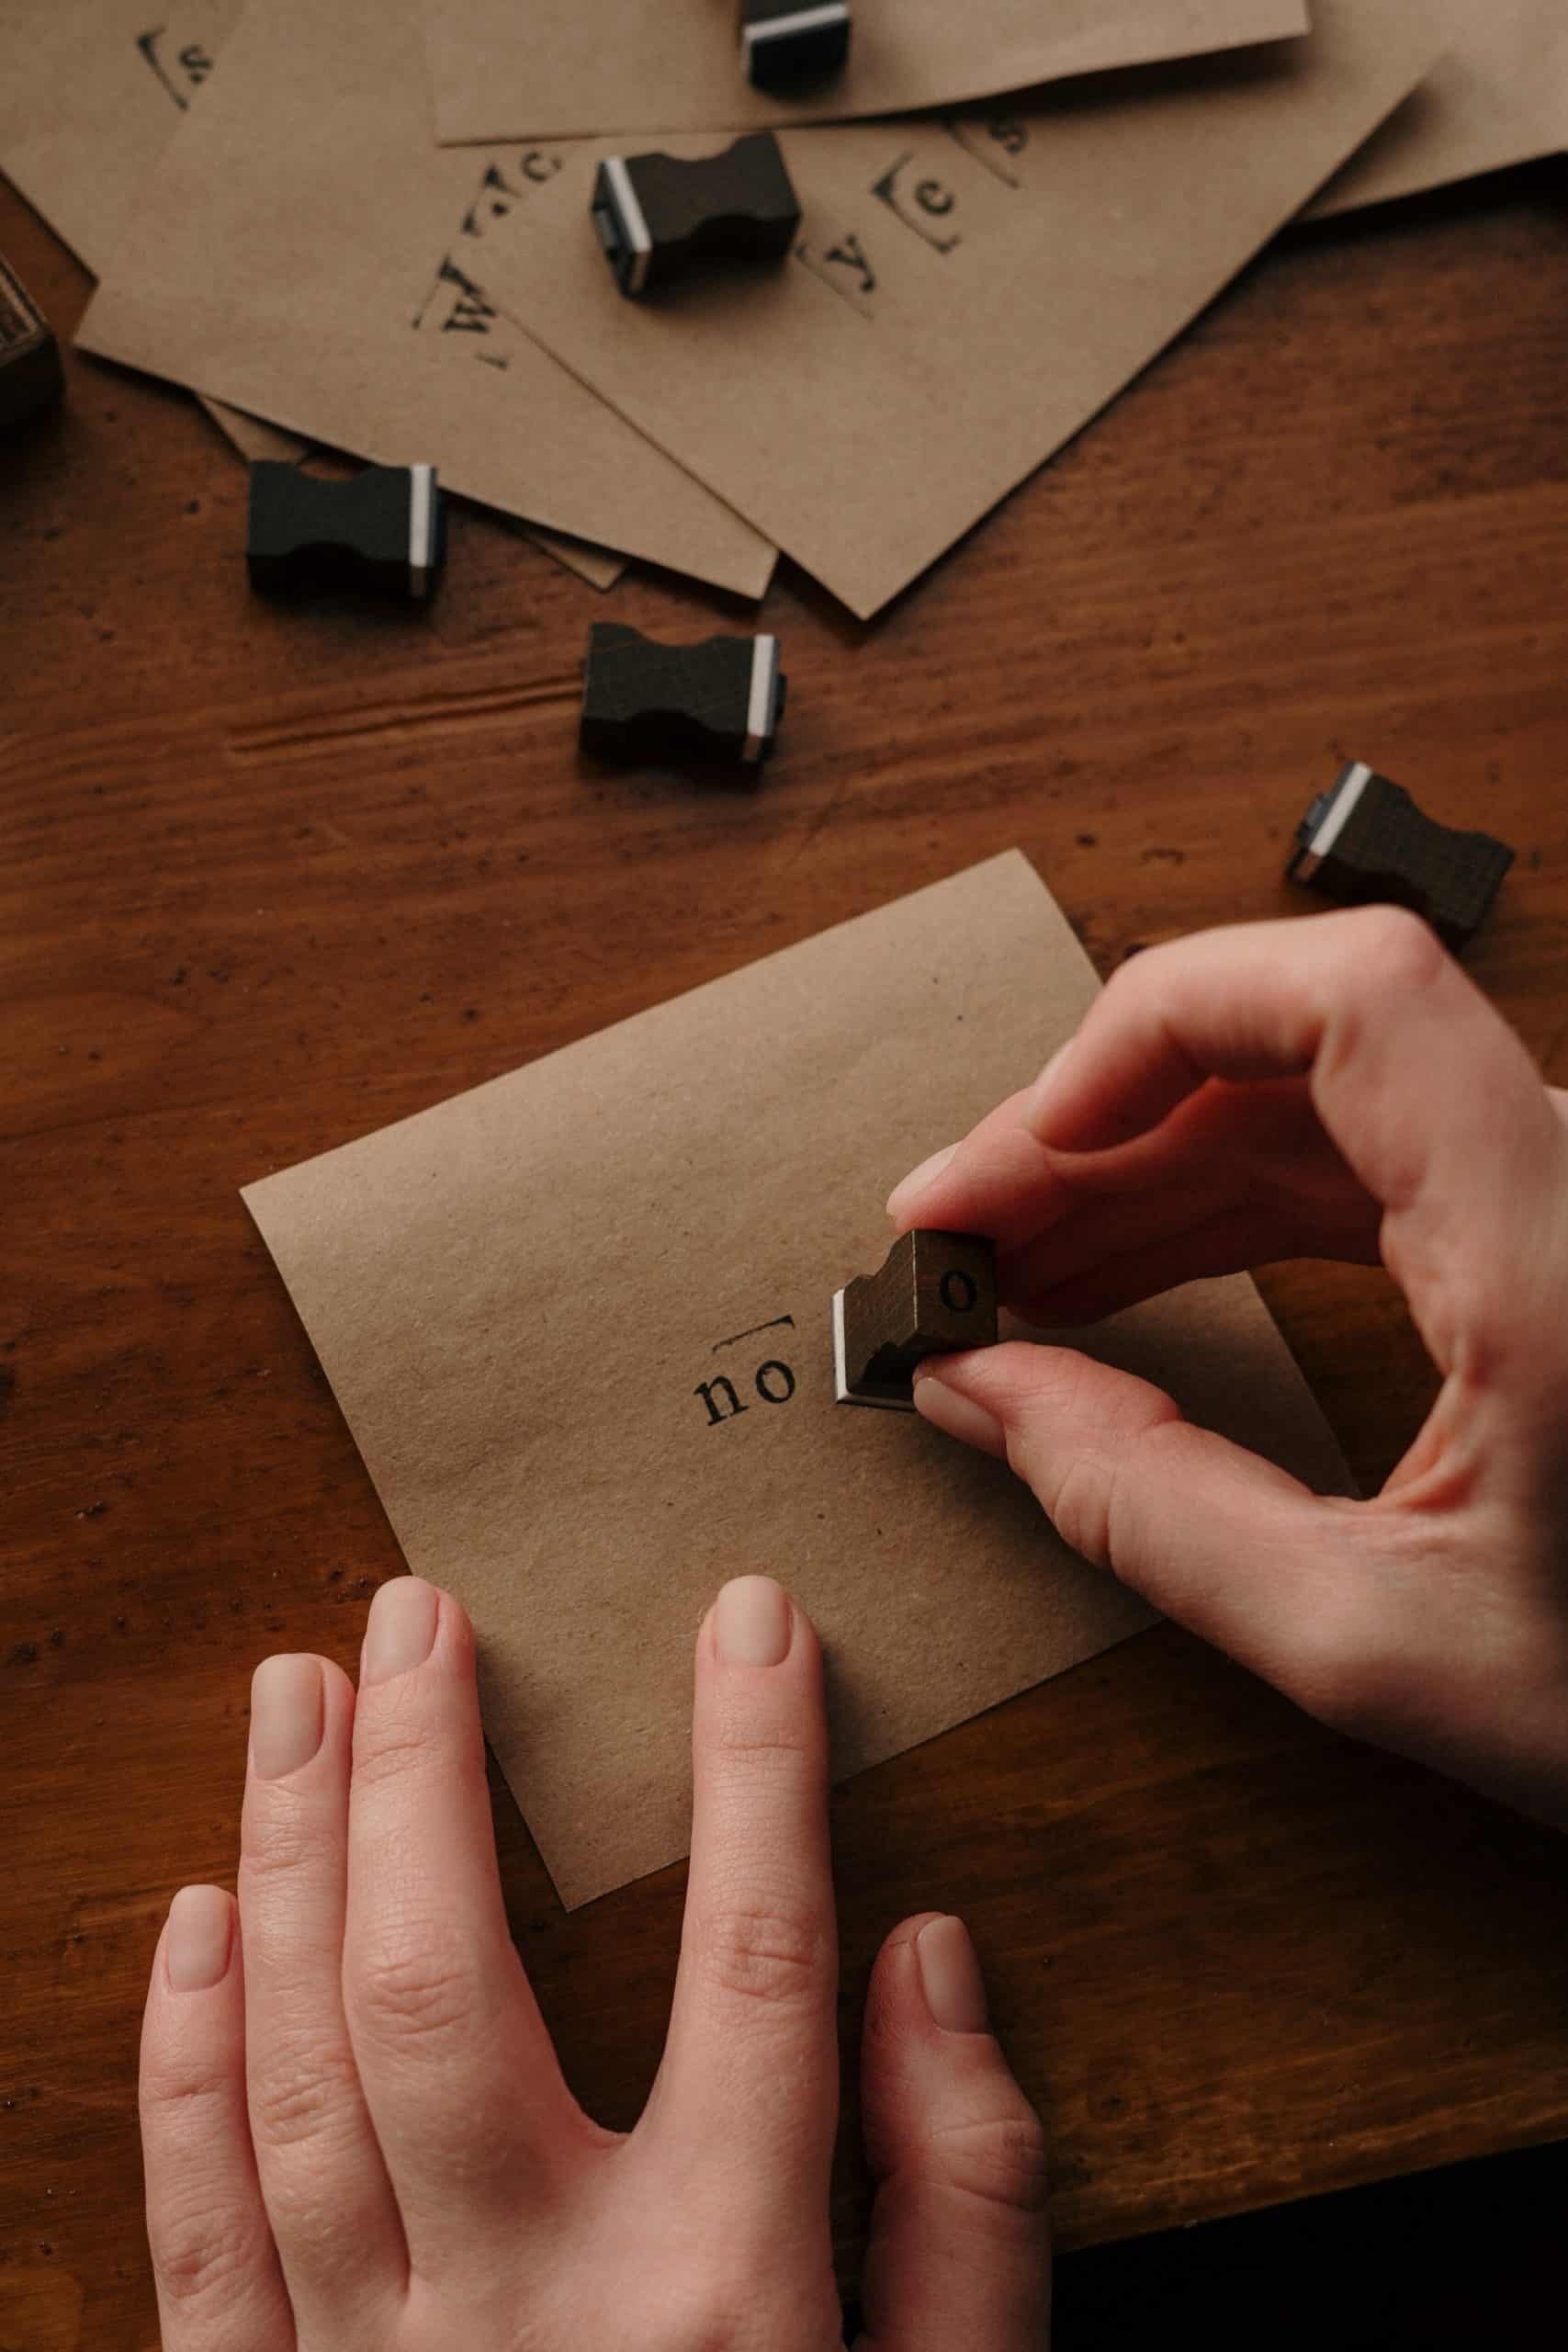 person holding piece of paper stamping the word 'no' on it